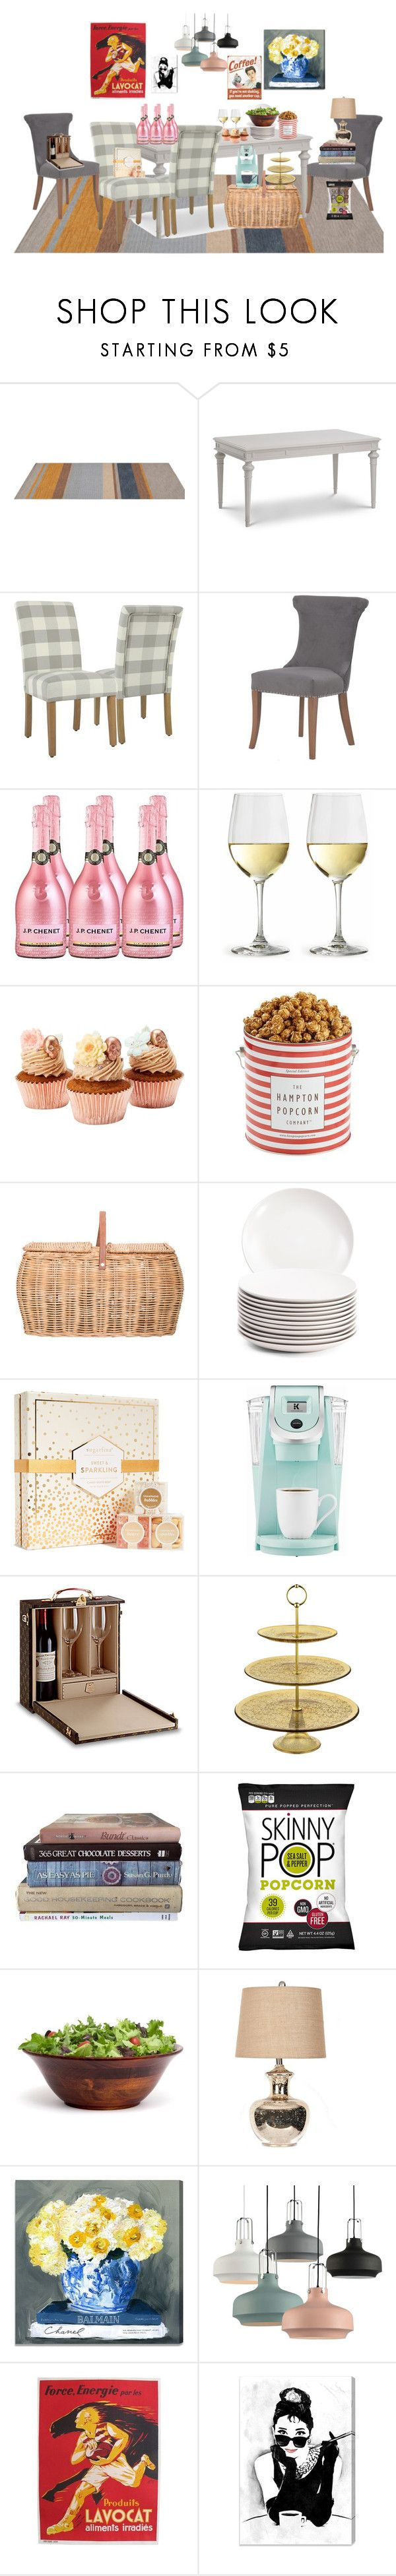 """""""Be the Life of the Party"""" by paris55587 ❤ liked on Polyvore featuring interior, interiors, interior design, home, home decor, interior decorating, The Hampton Popcorn Company, Bloomingville, sugarfina and Keurig"""